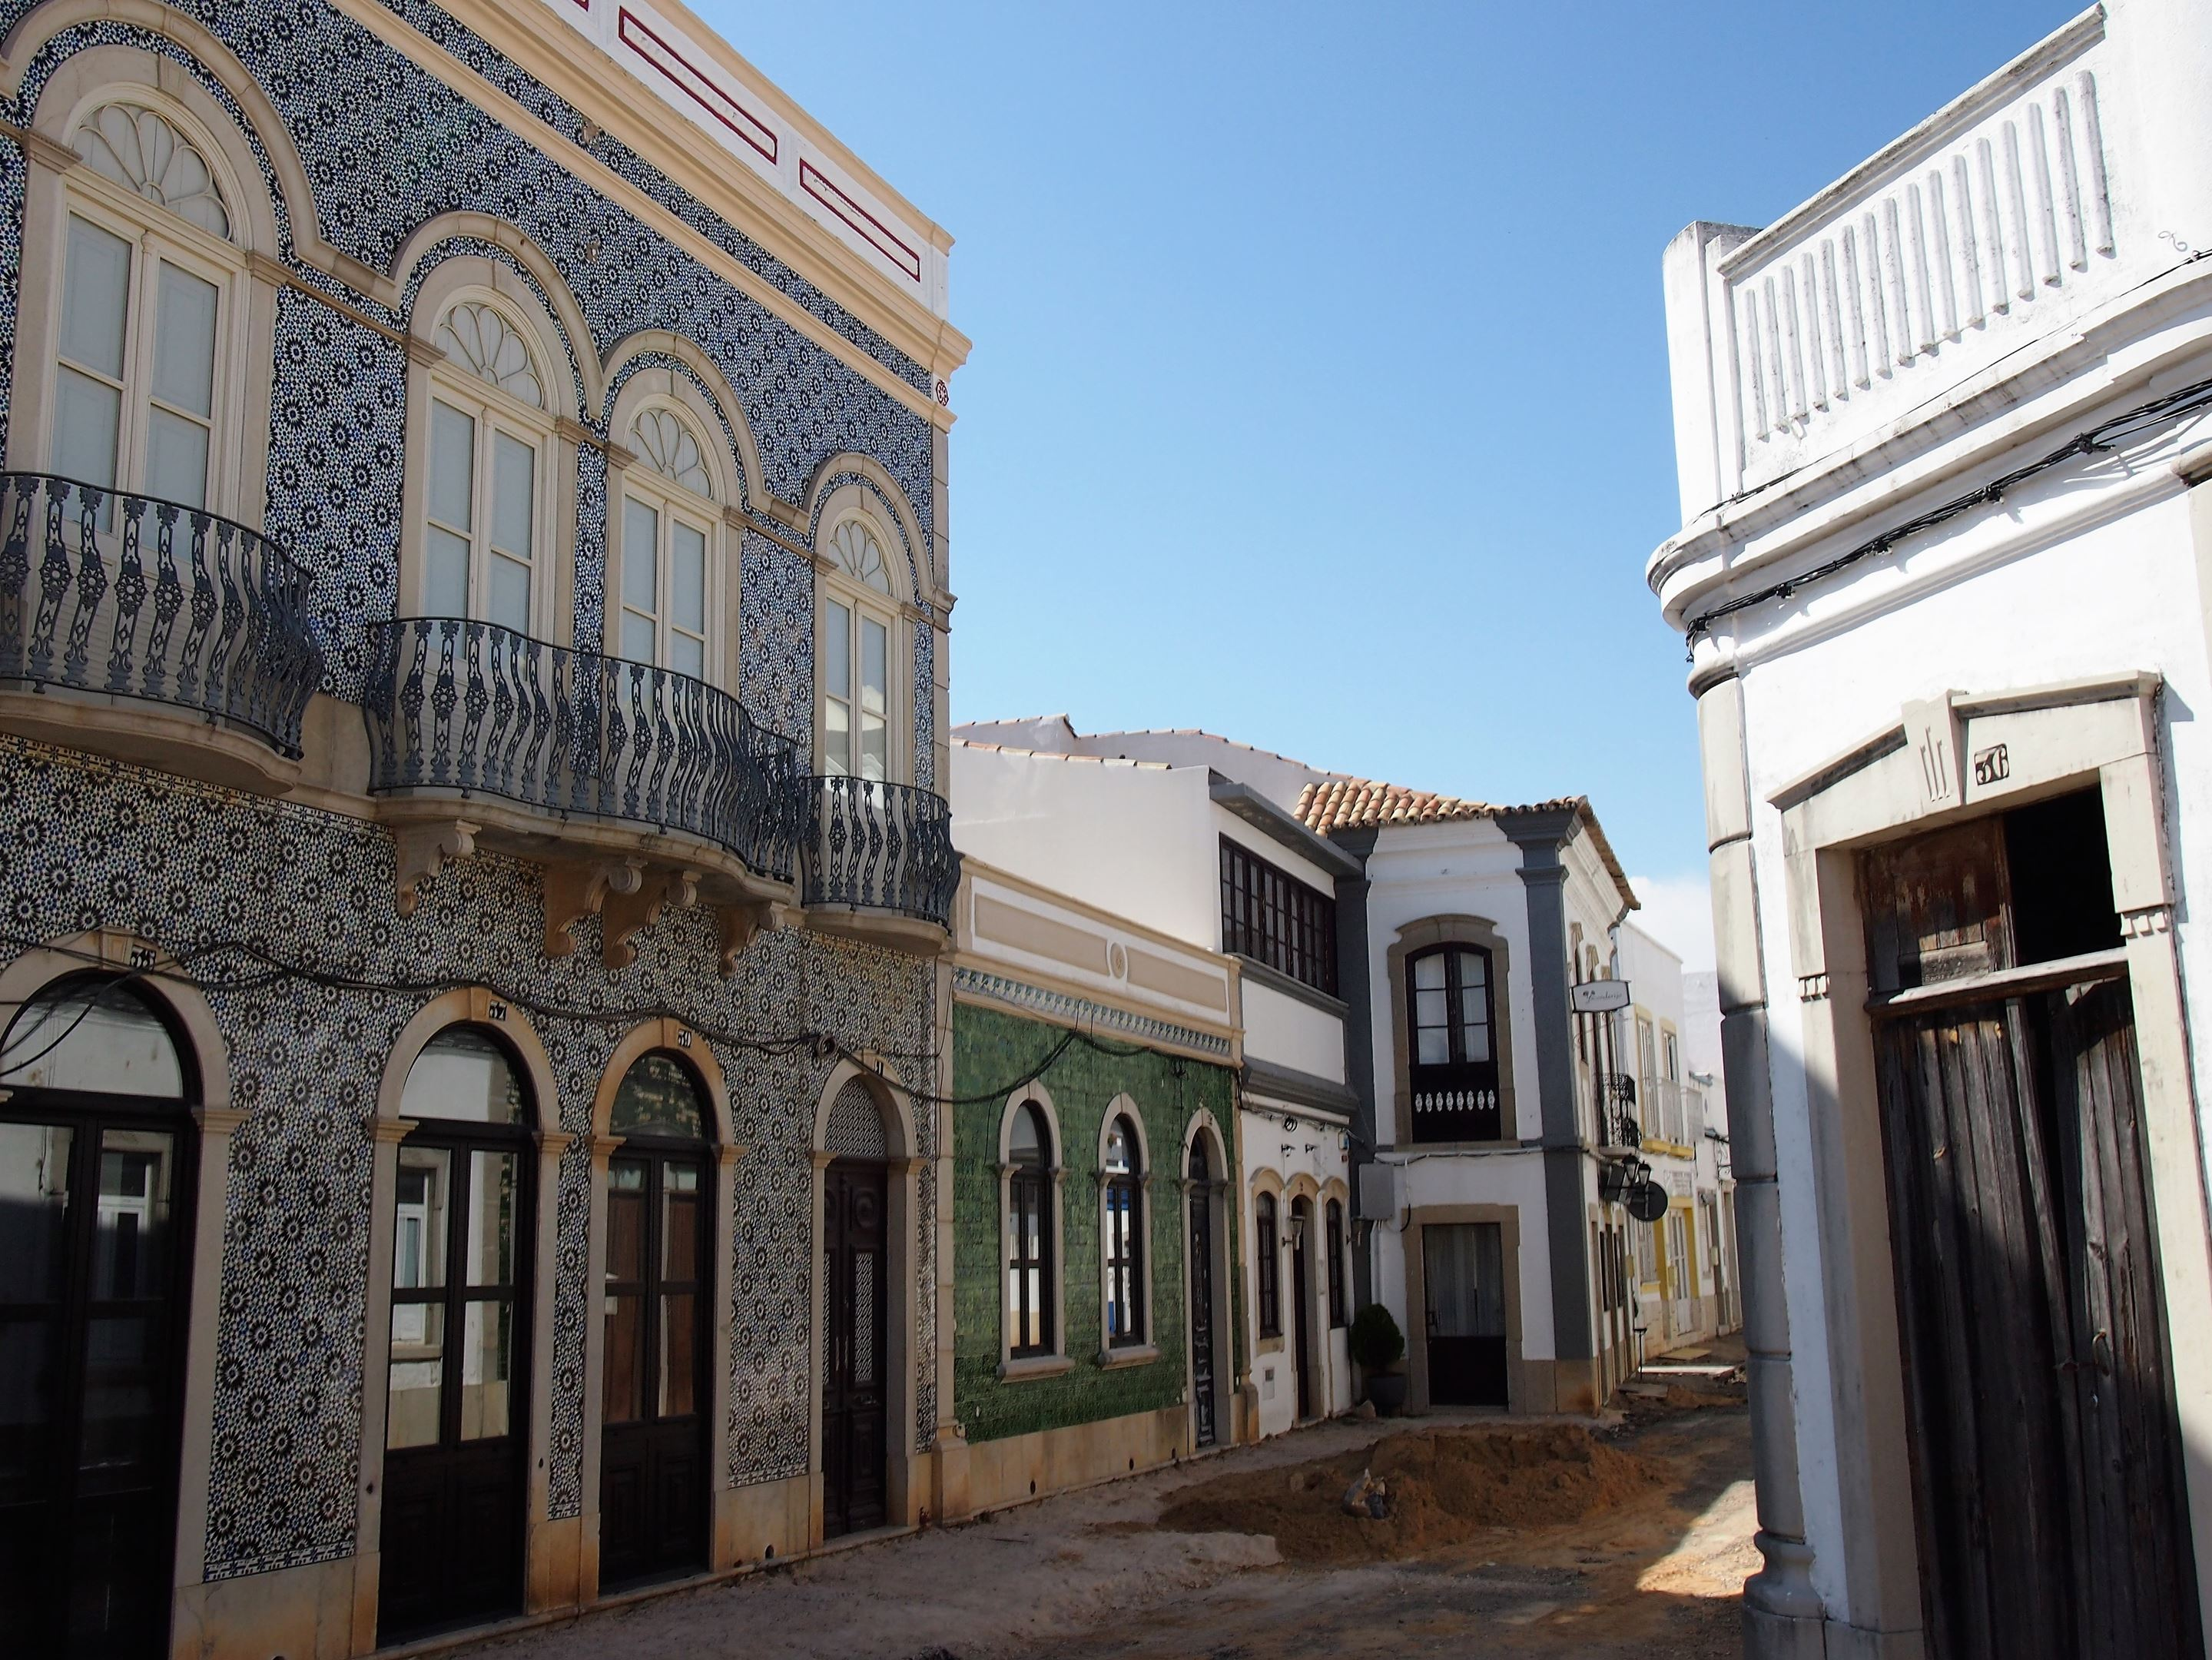 In the beautiful and peaceful old town area of São Brás de Alportel, with the restaurant Ysconderijo in the background